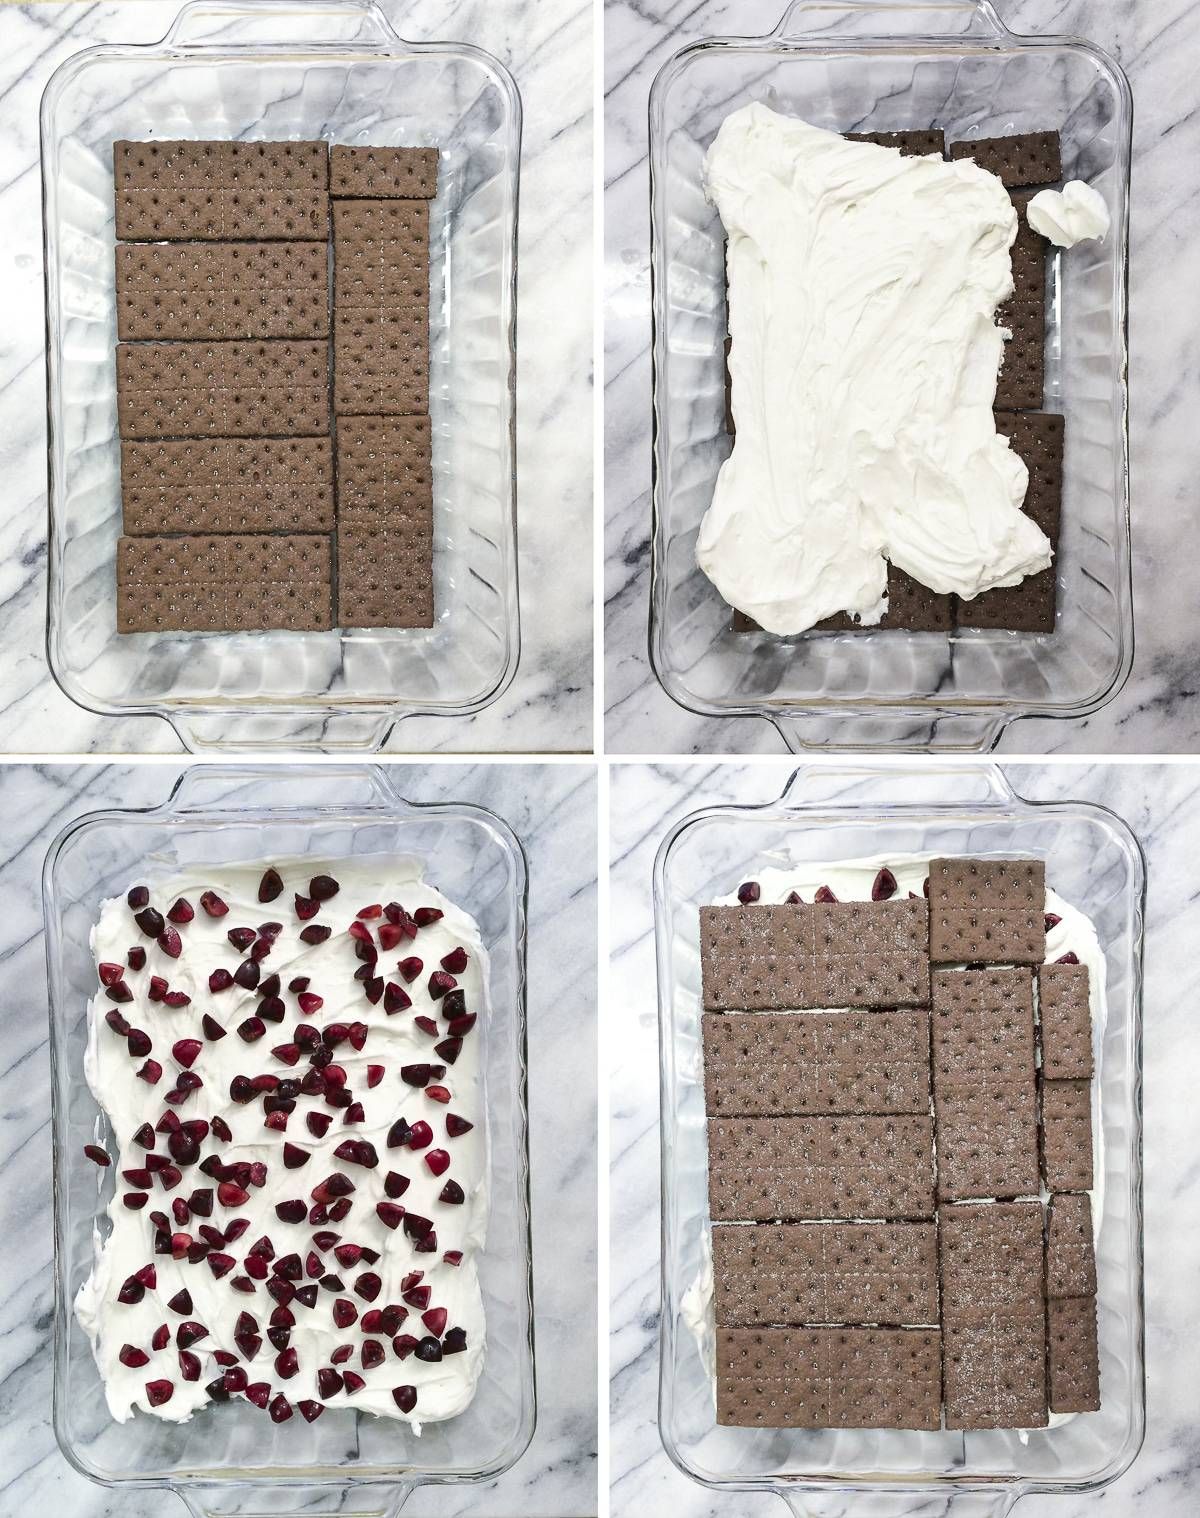 Black Forest Icebox Cake recipe with 5 easy ingredients including real cherries!